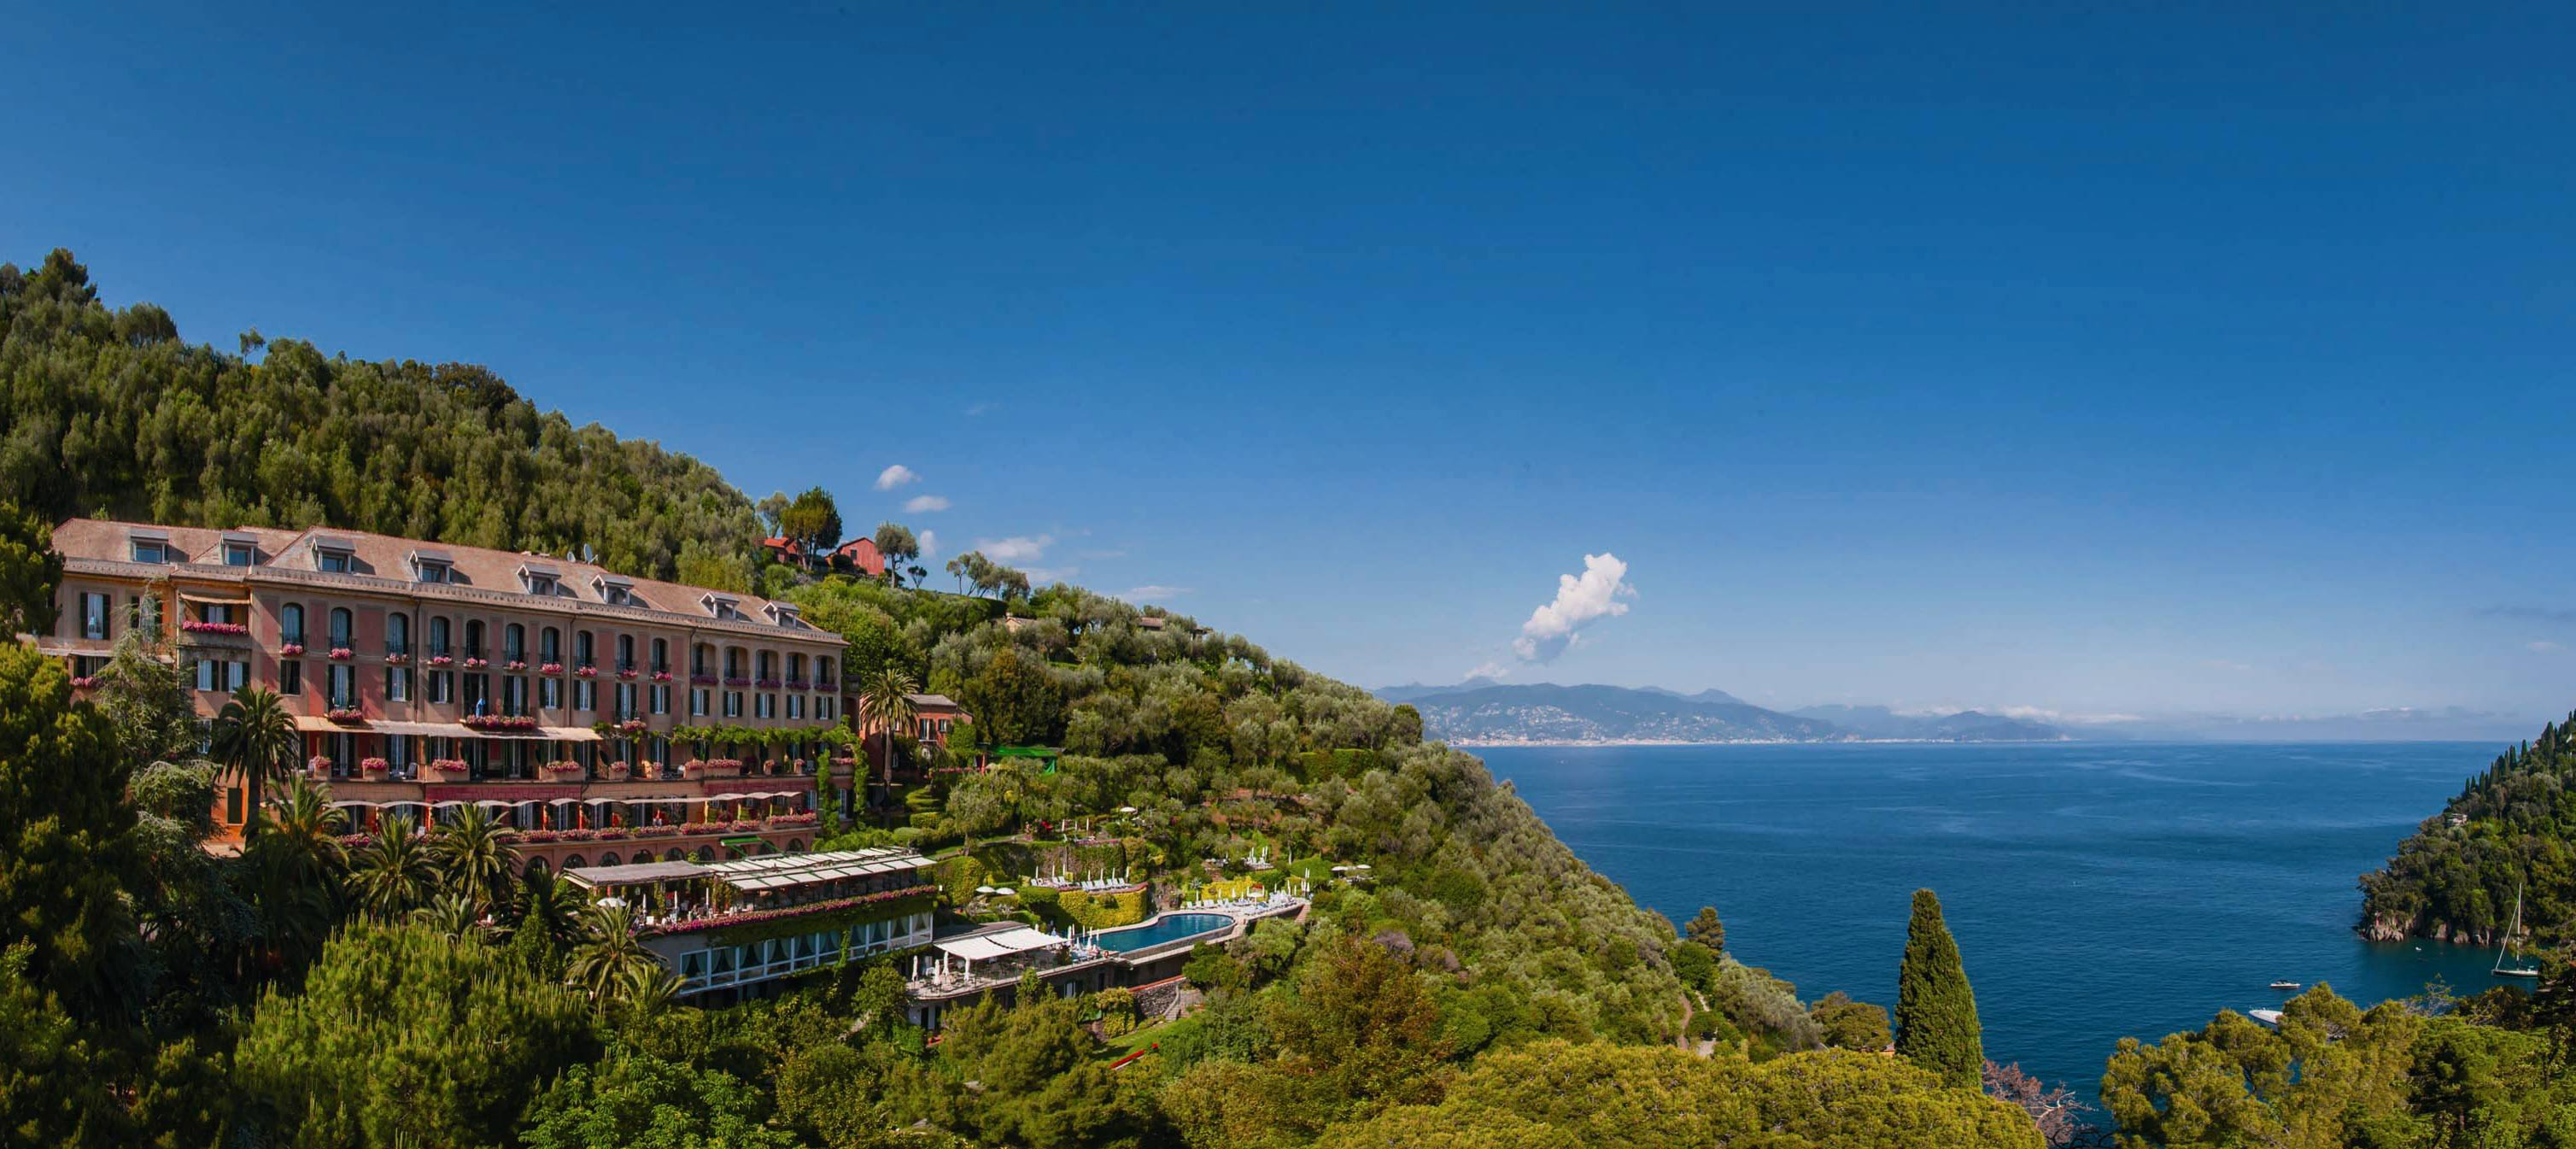 Cinque terre alberghi for Hotels 5 terres